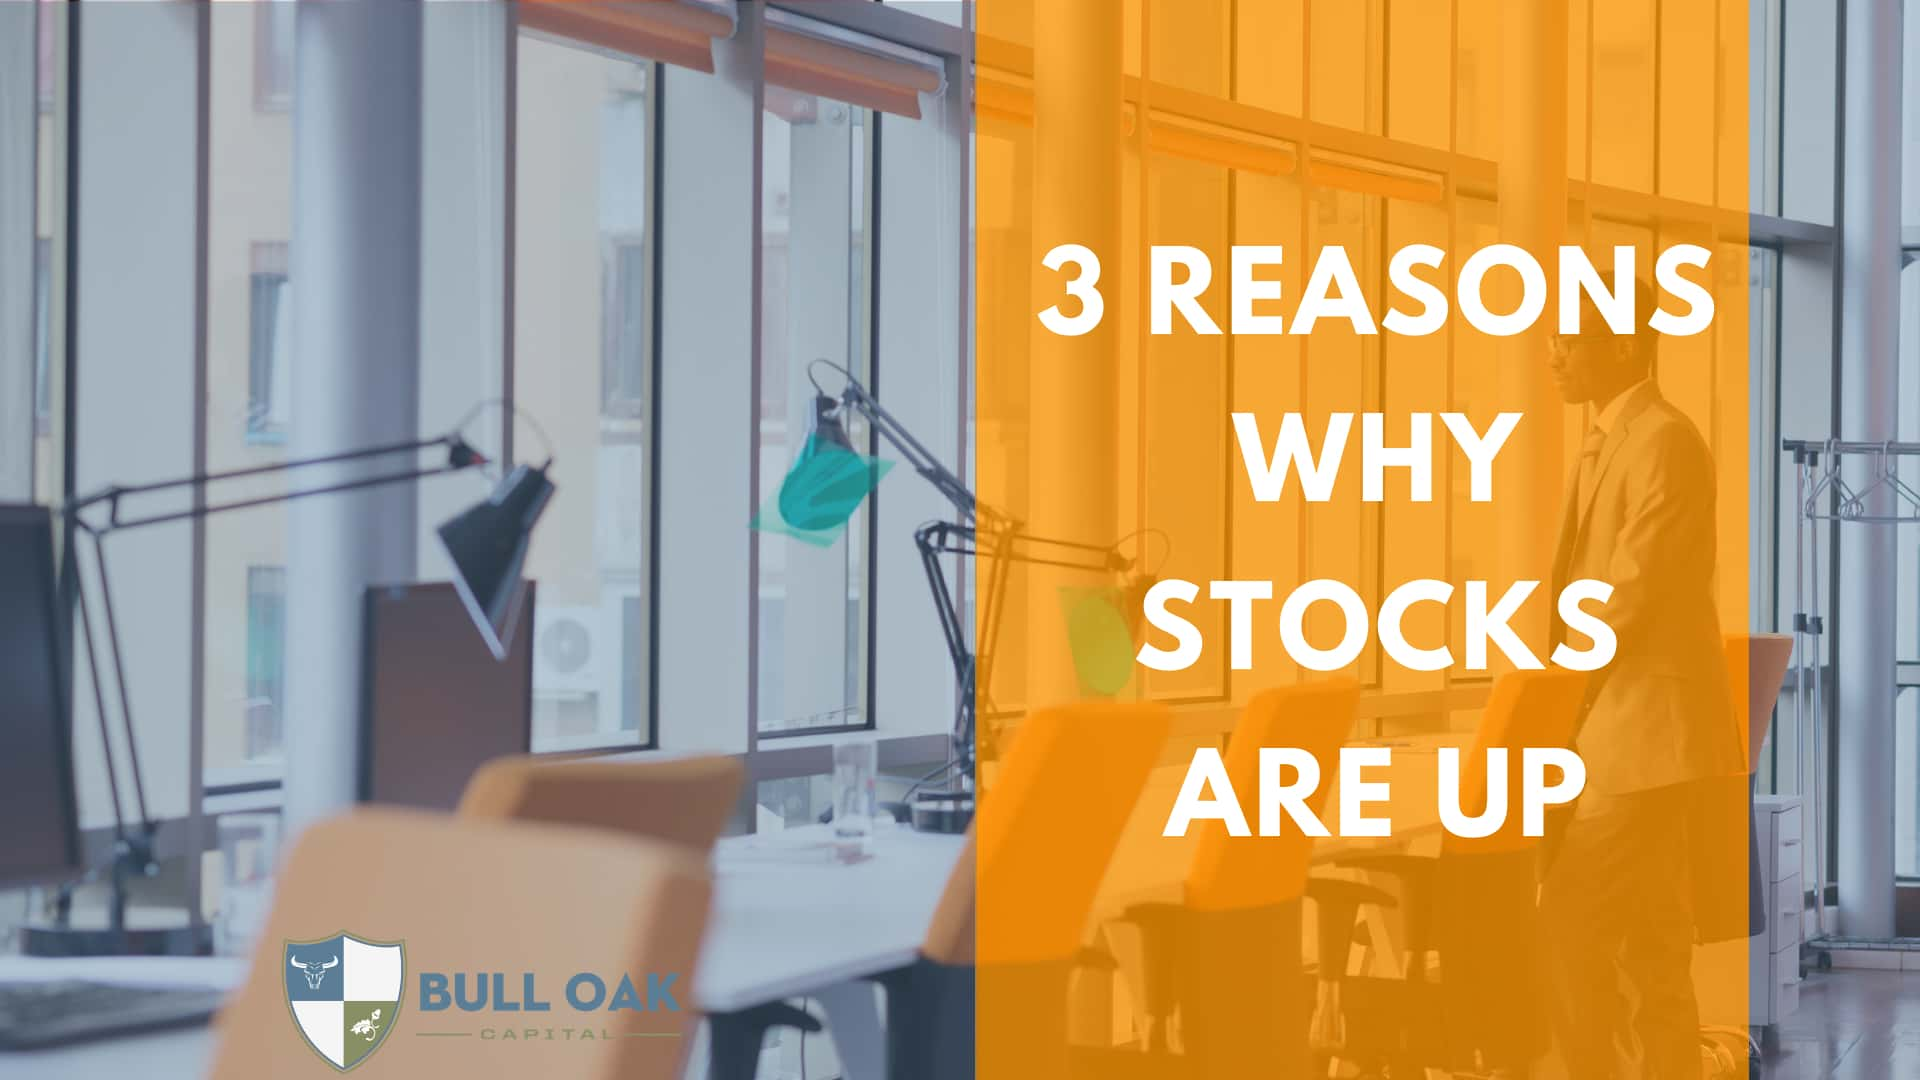 Reasons Why Stocks Are Up